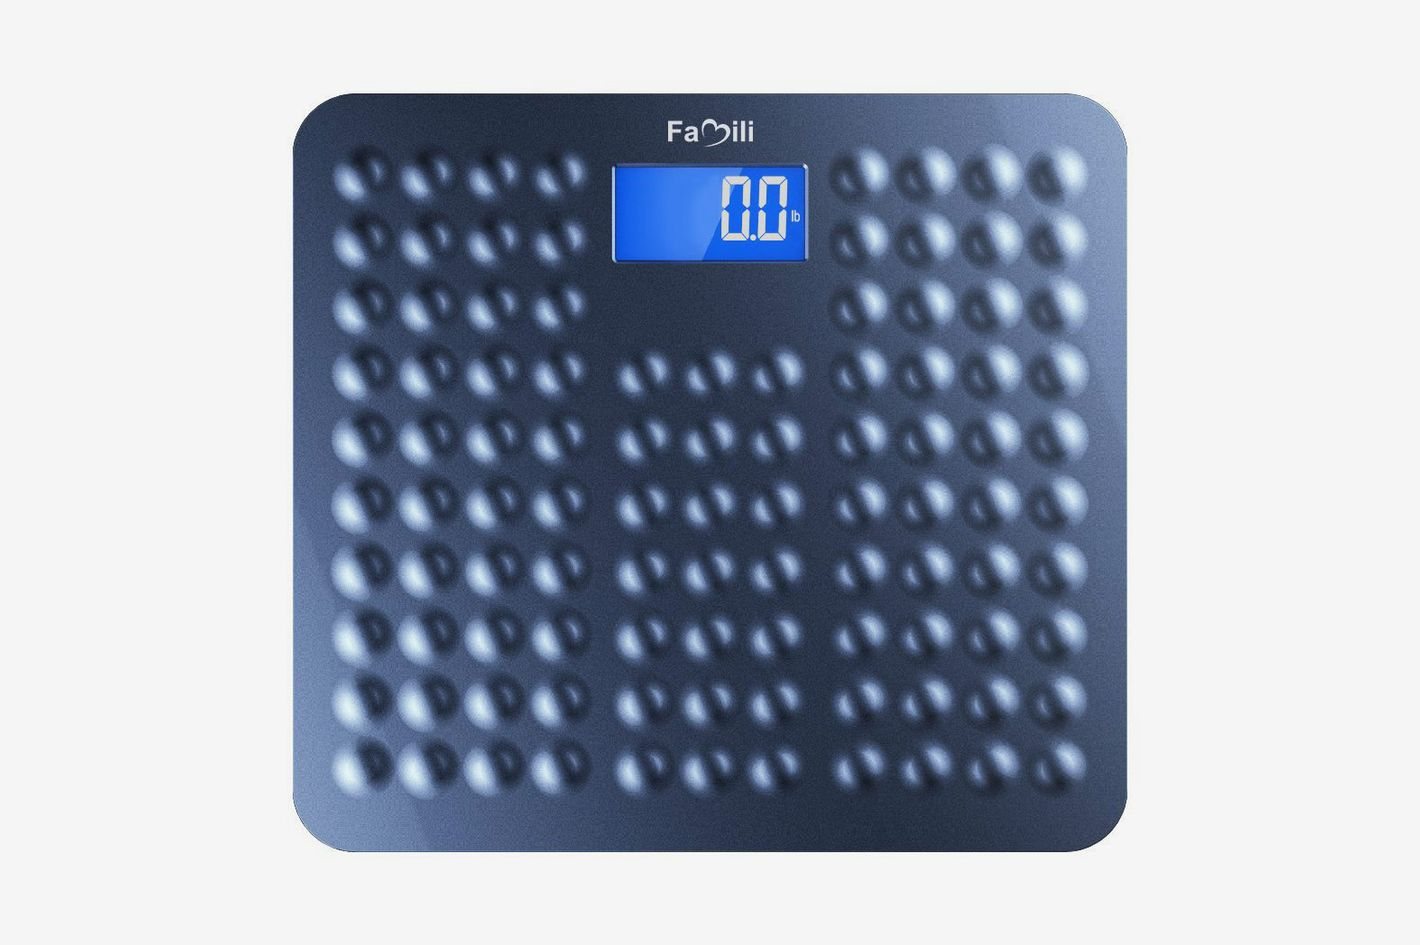 Famili 271B Bathroom Scale Digital Body Weight Scale